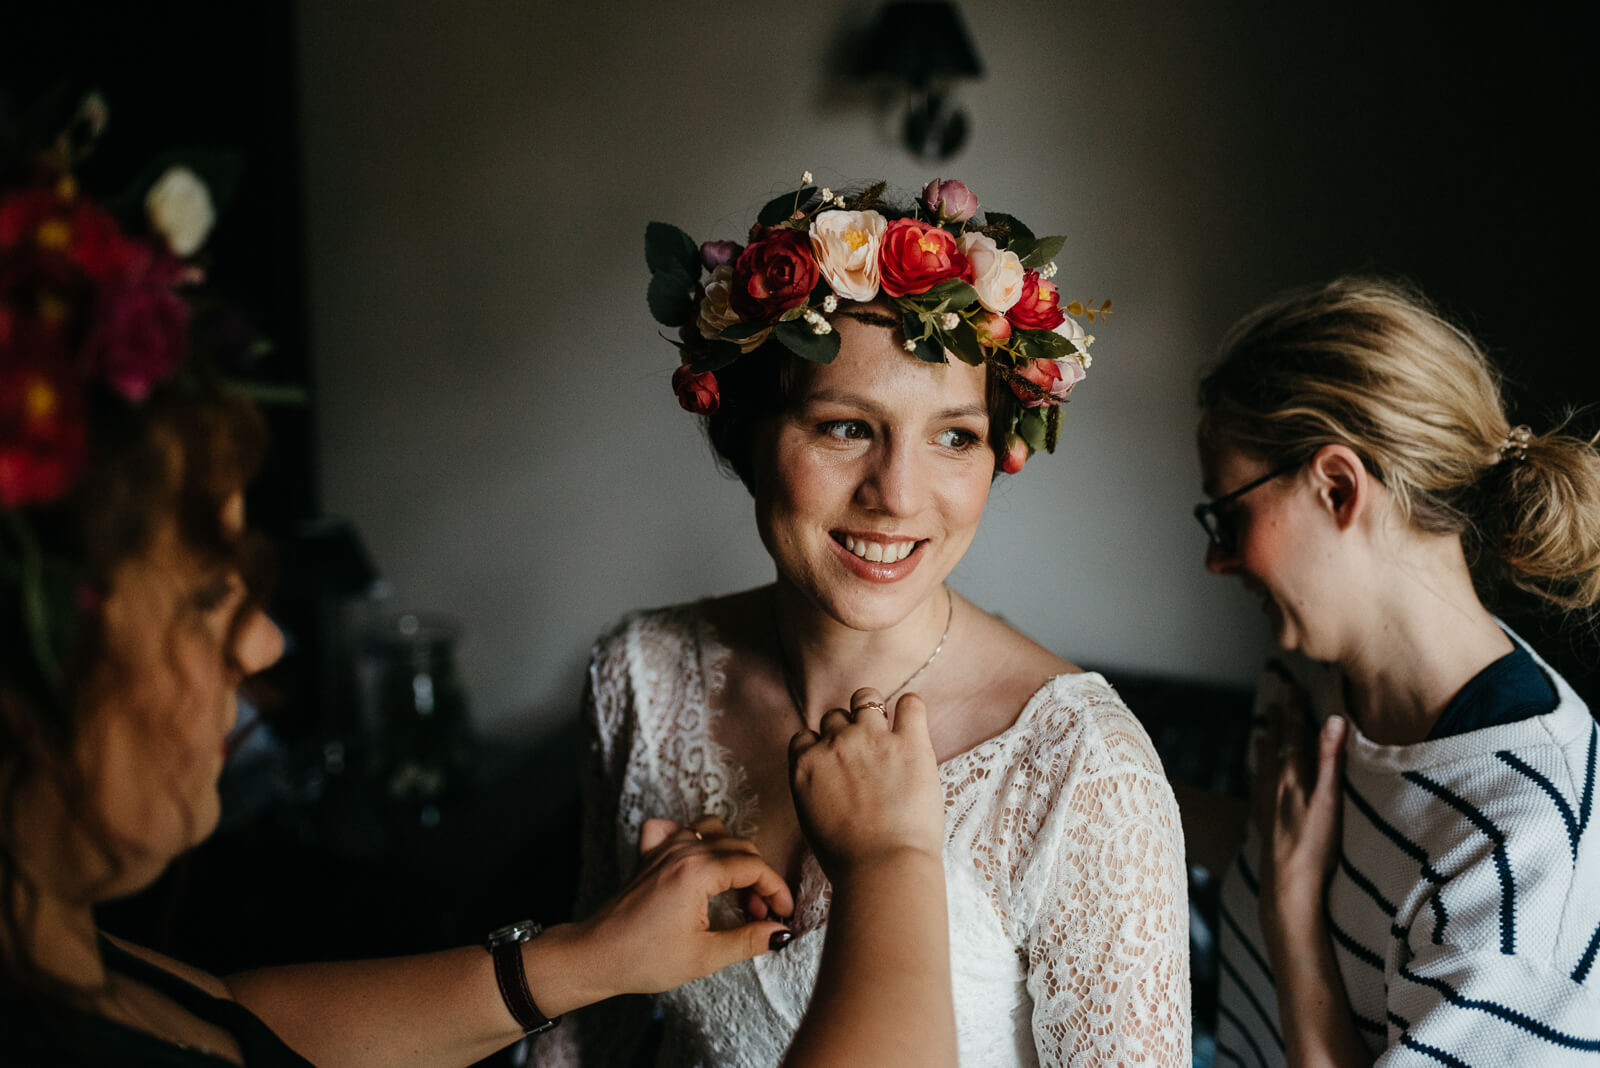 boho bride during her bridal preparations at Hampshire hotel